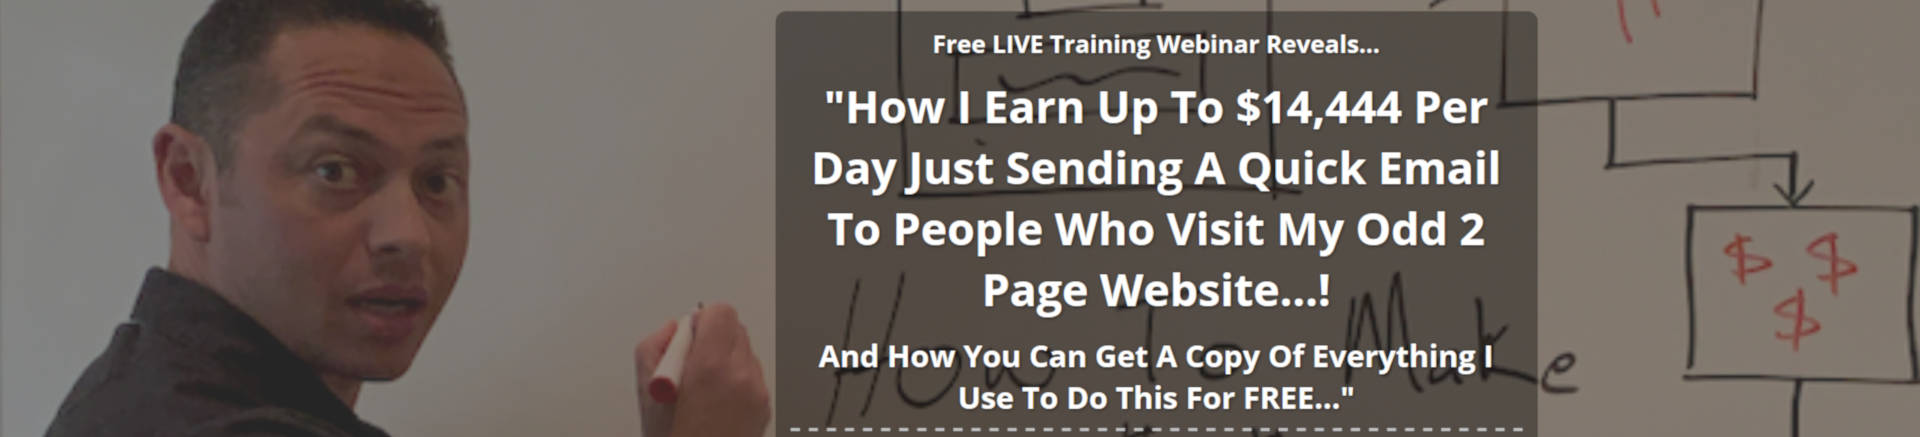 Under 500 Training Program 1k A Day Fast Track